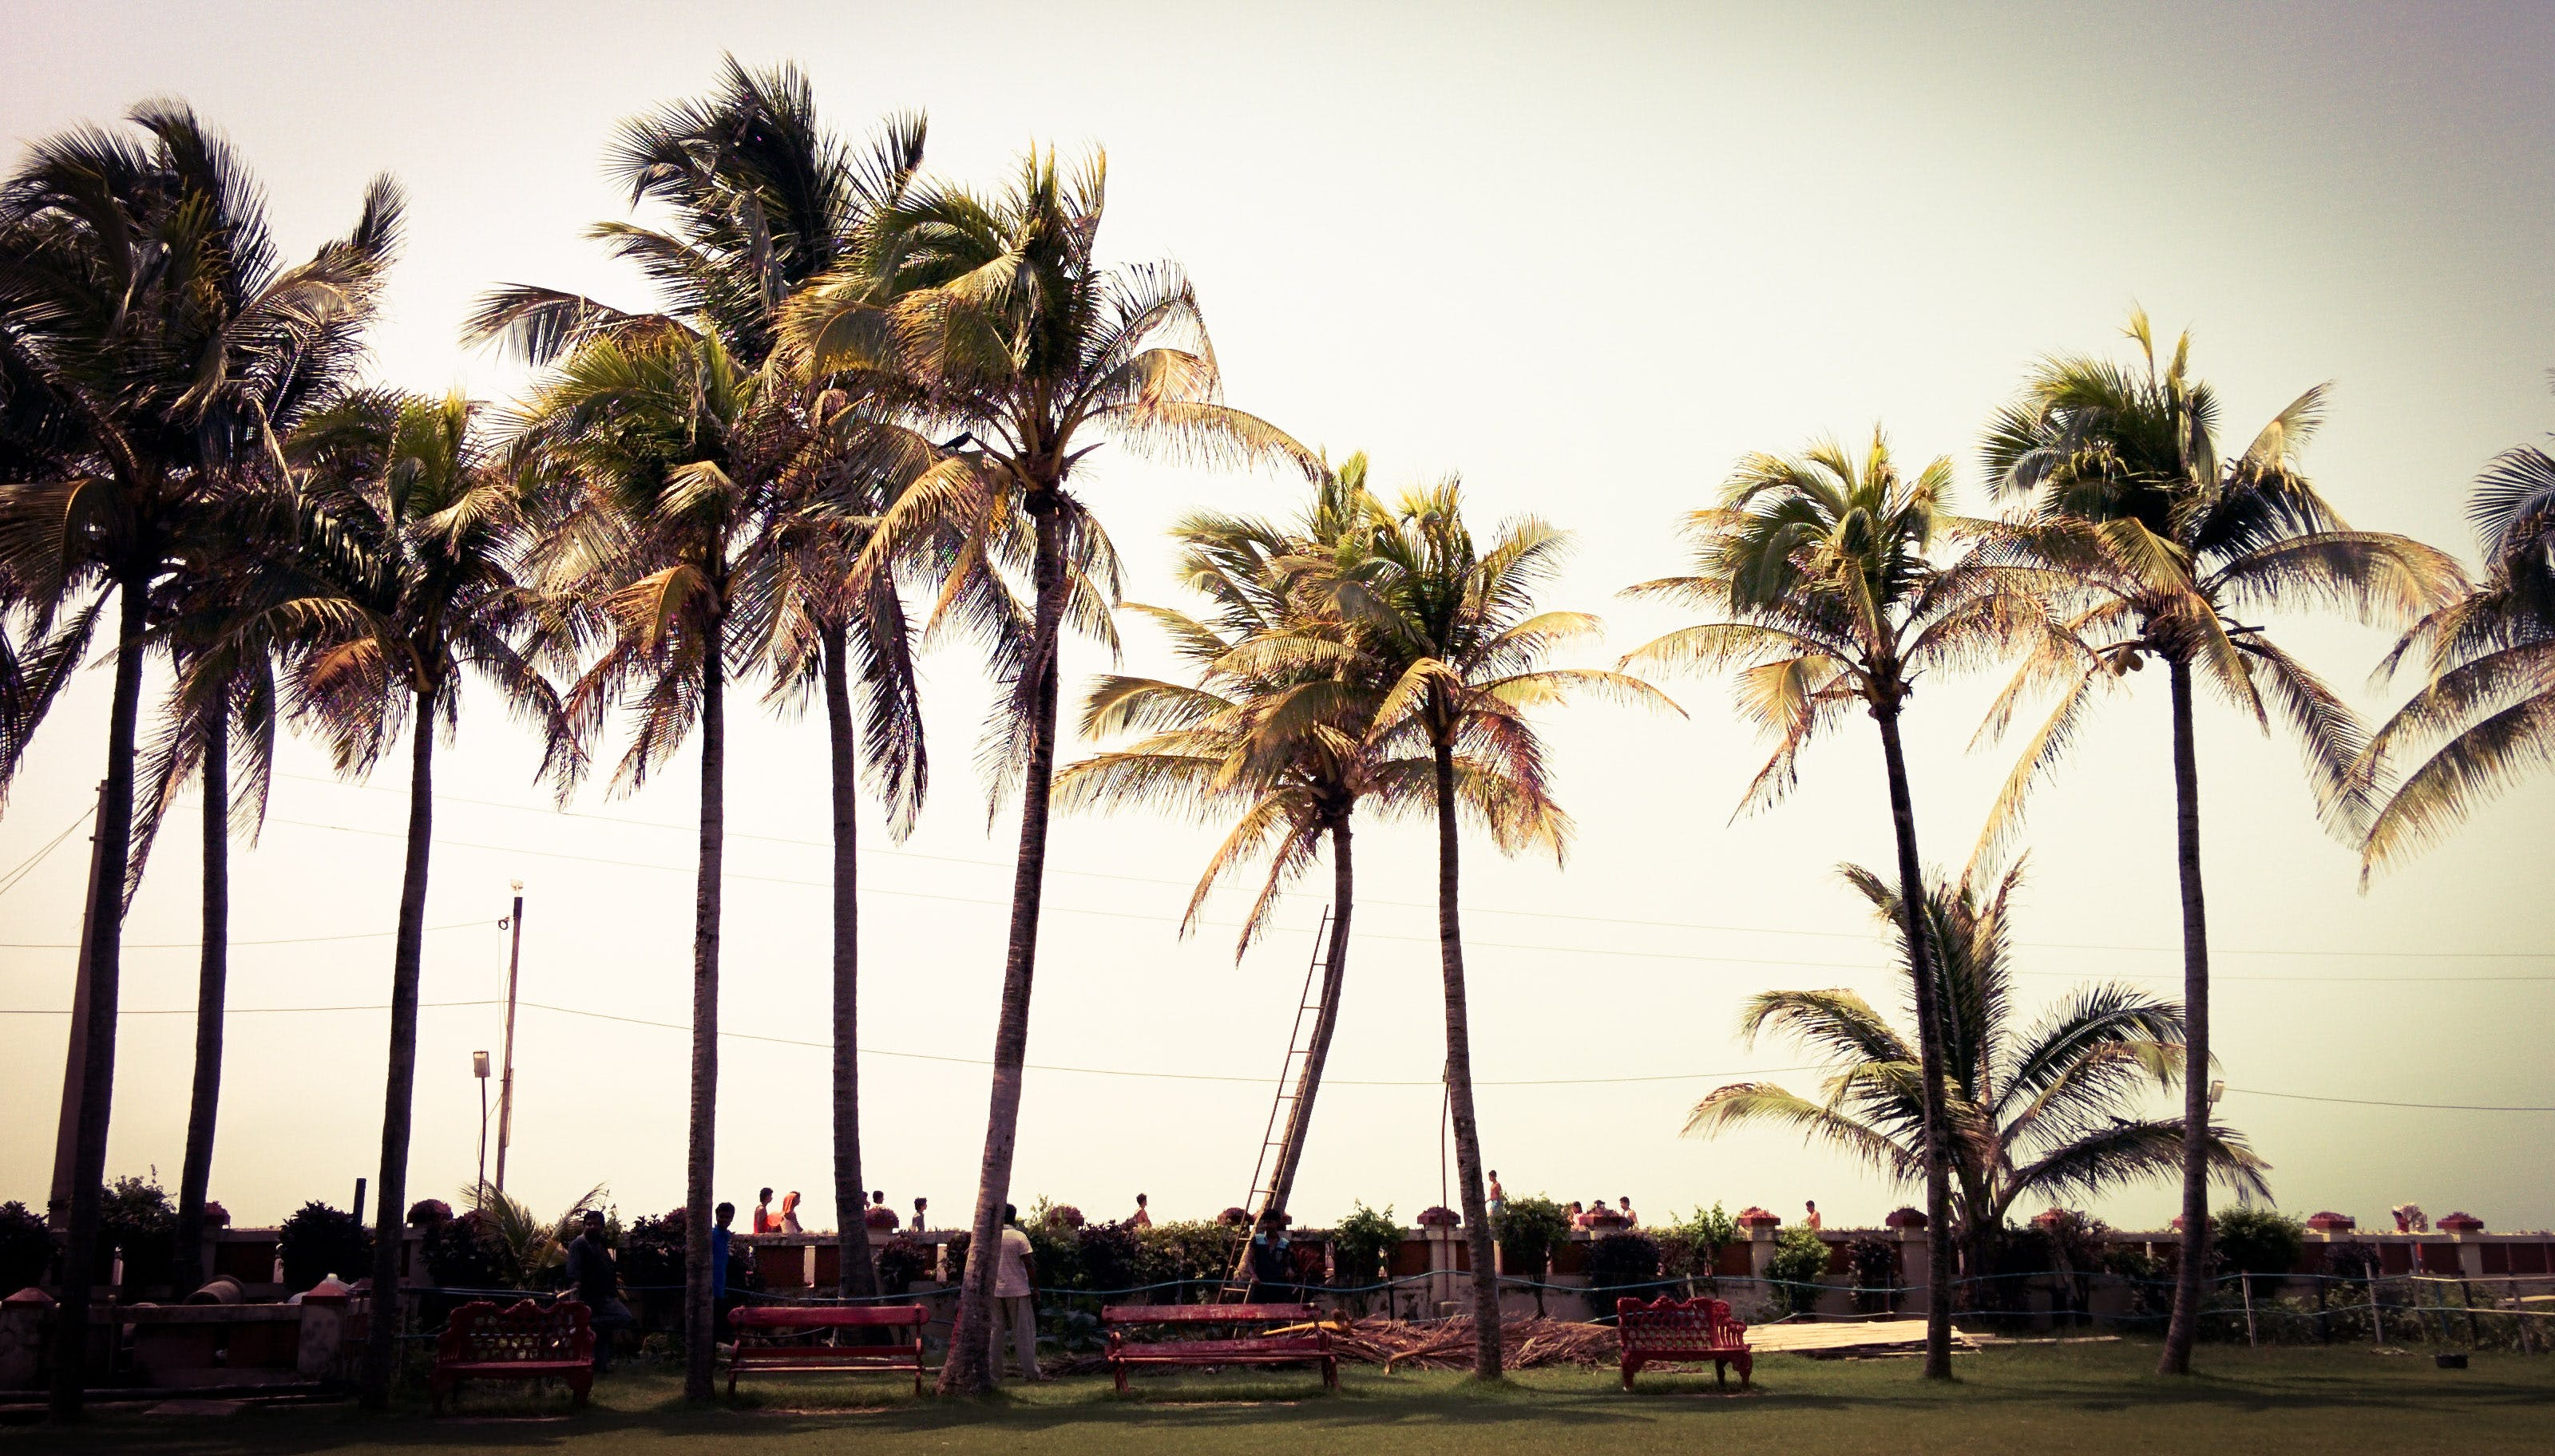 benches, coconut trees, coconuts